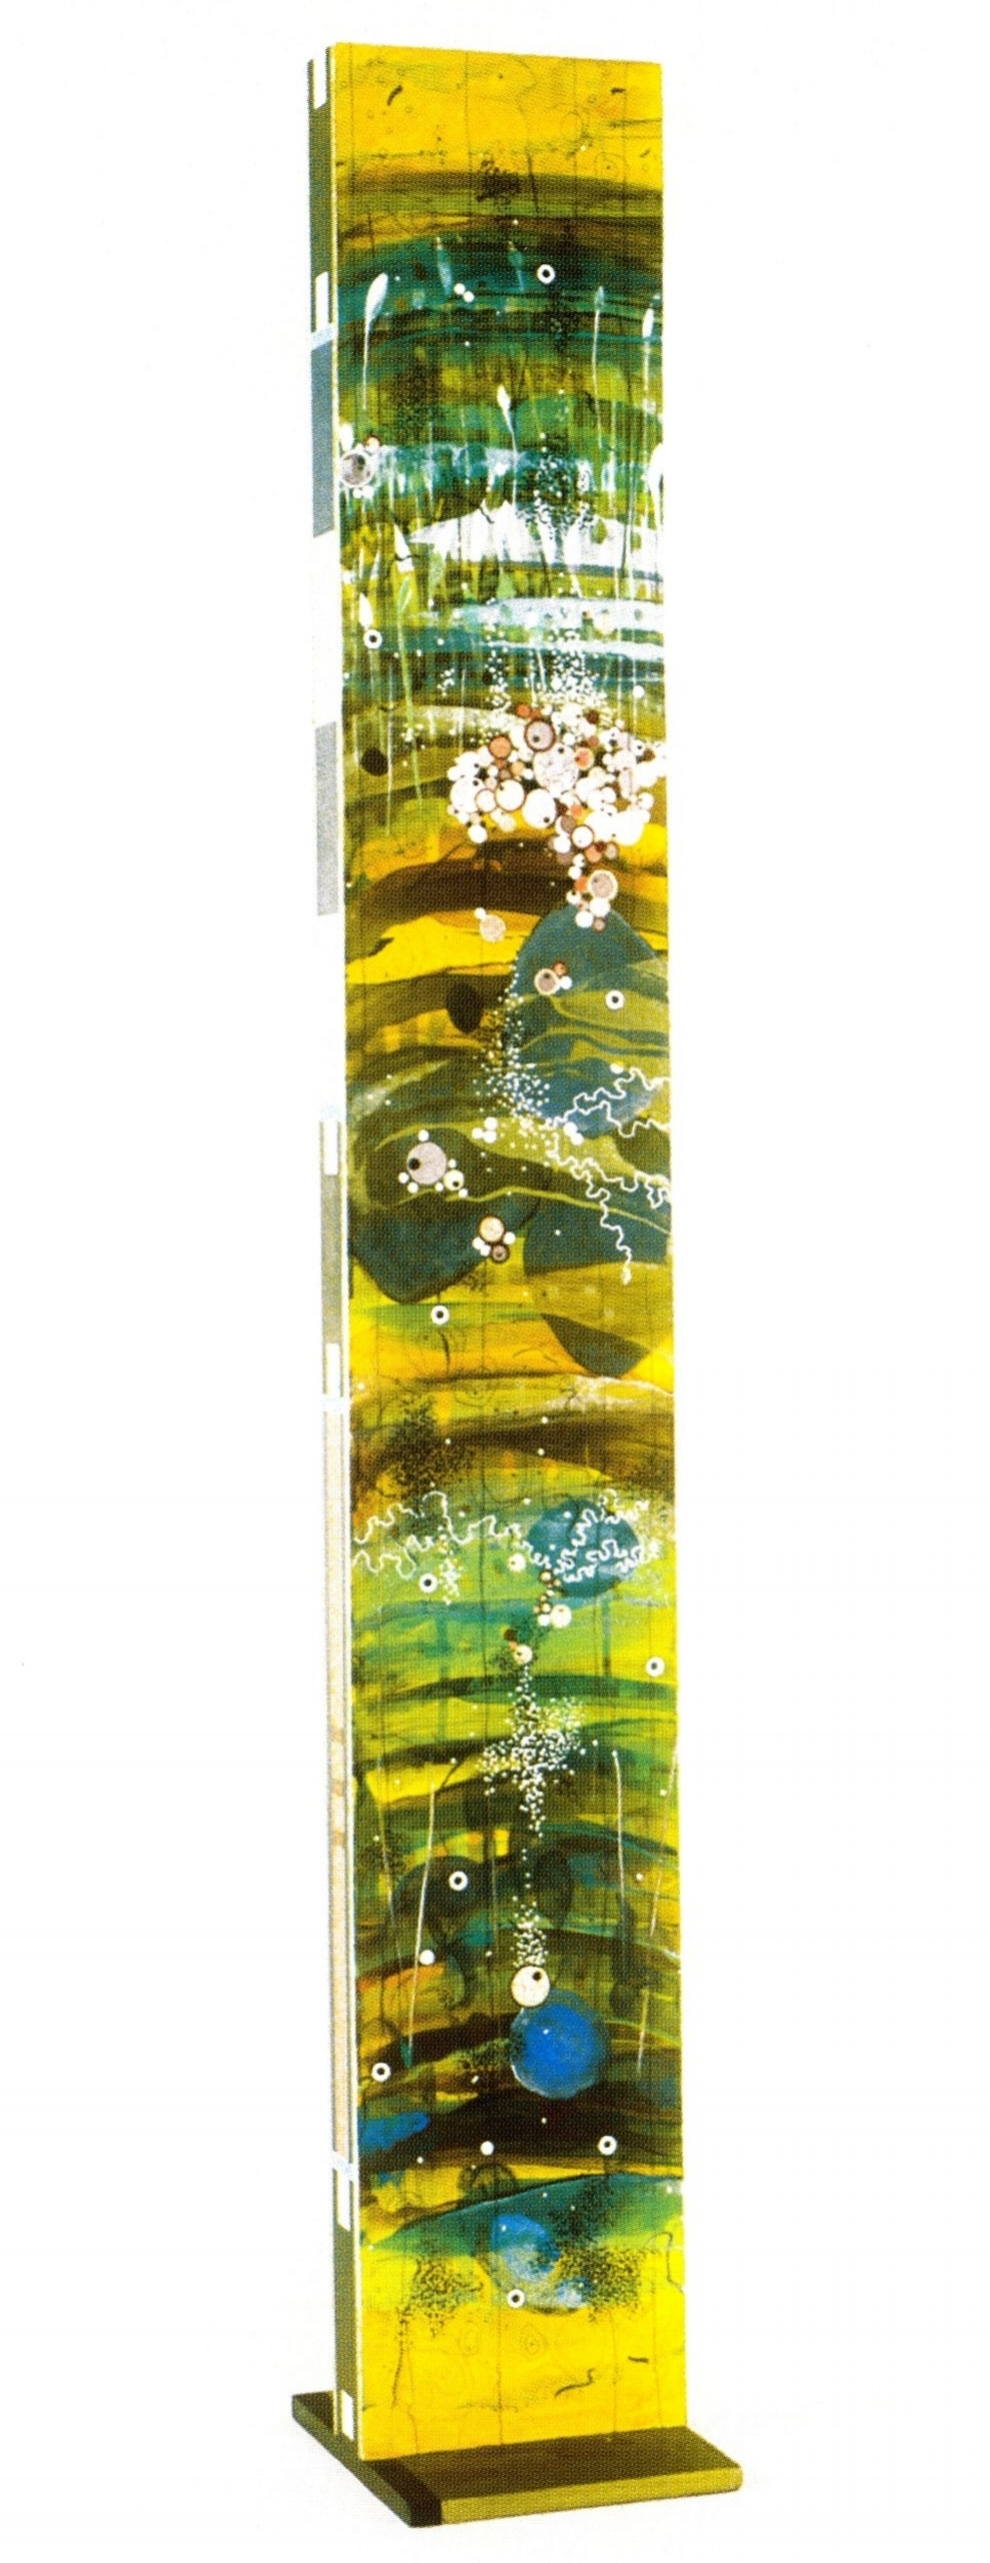 "Betsy Stewart    Aquatilis#1 side 2, 2004 .  Acrylic and sumi ink on wood, 70""x10""3"""